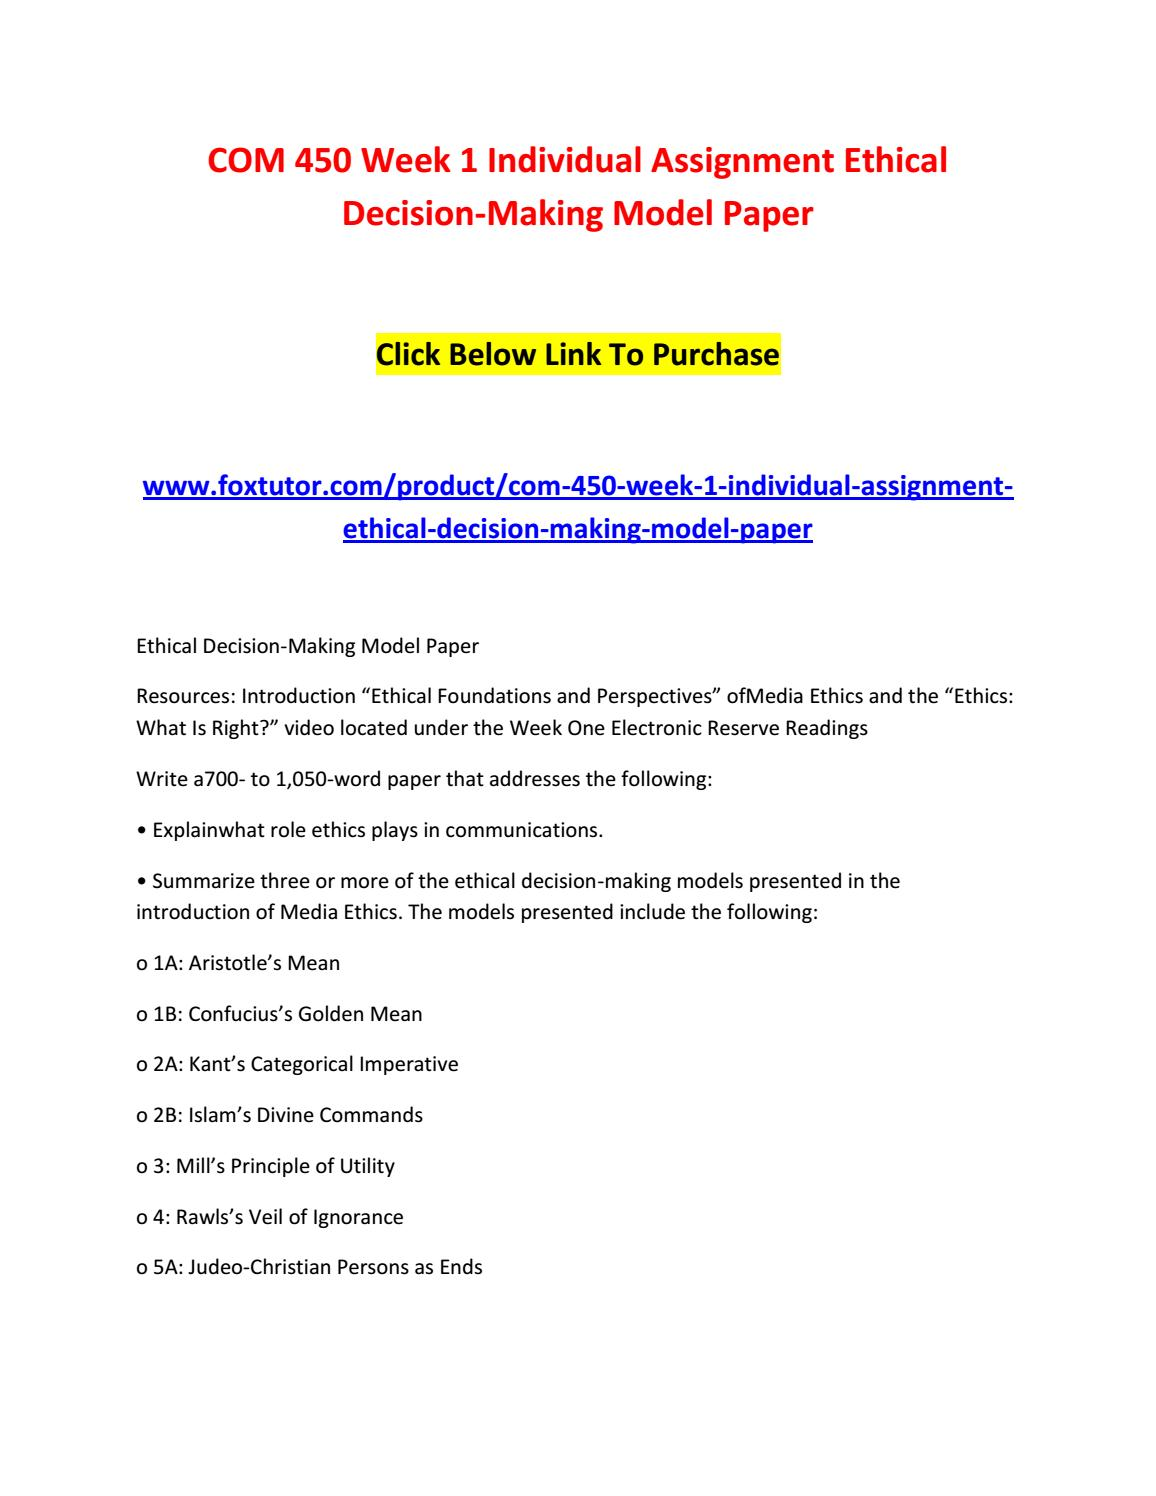 Com 450 week 1 individual assignment ethical decision making